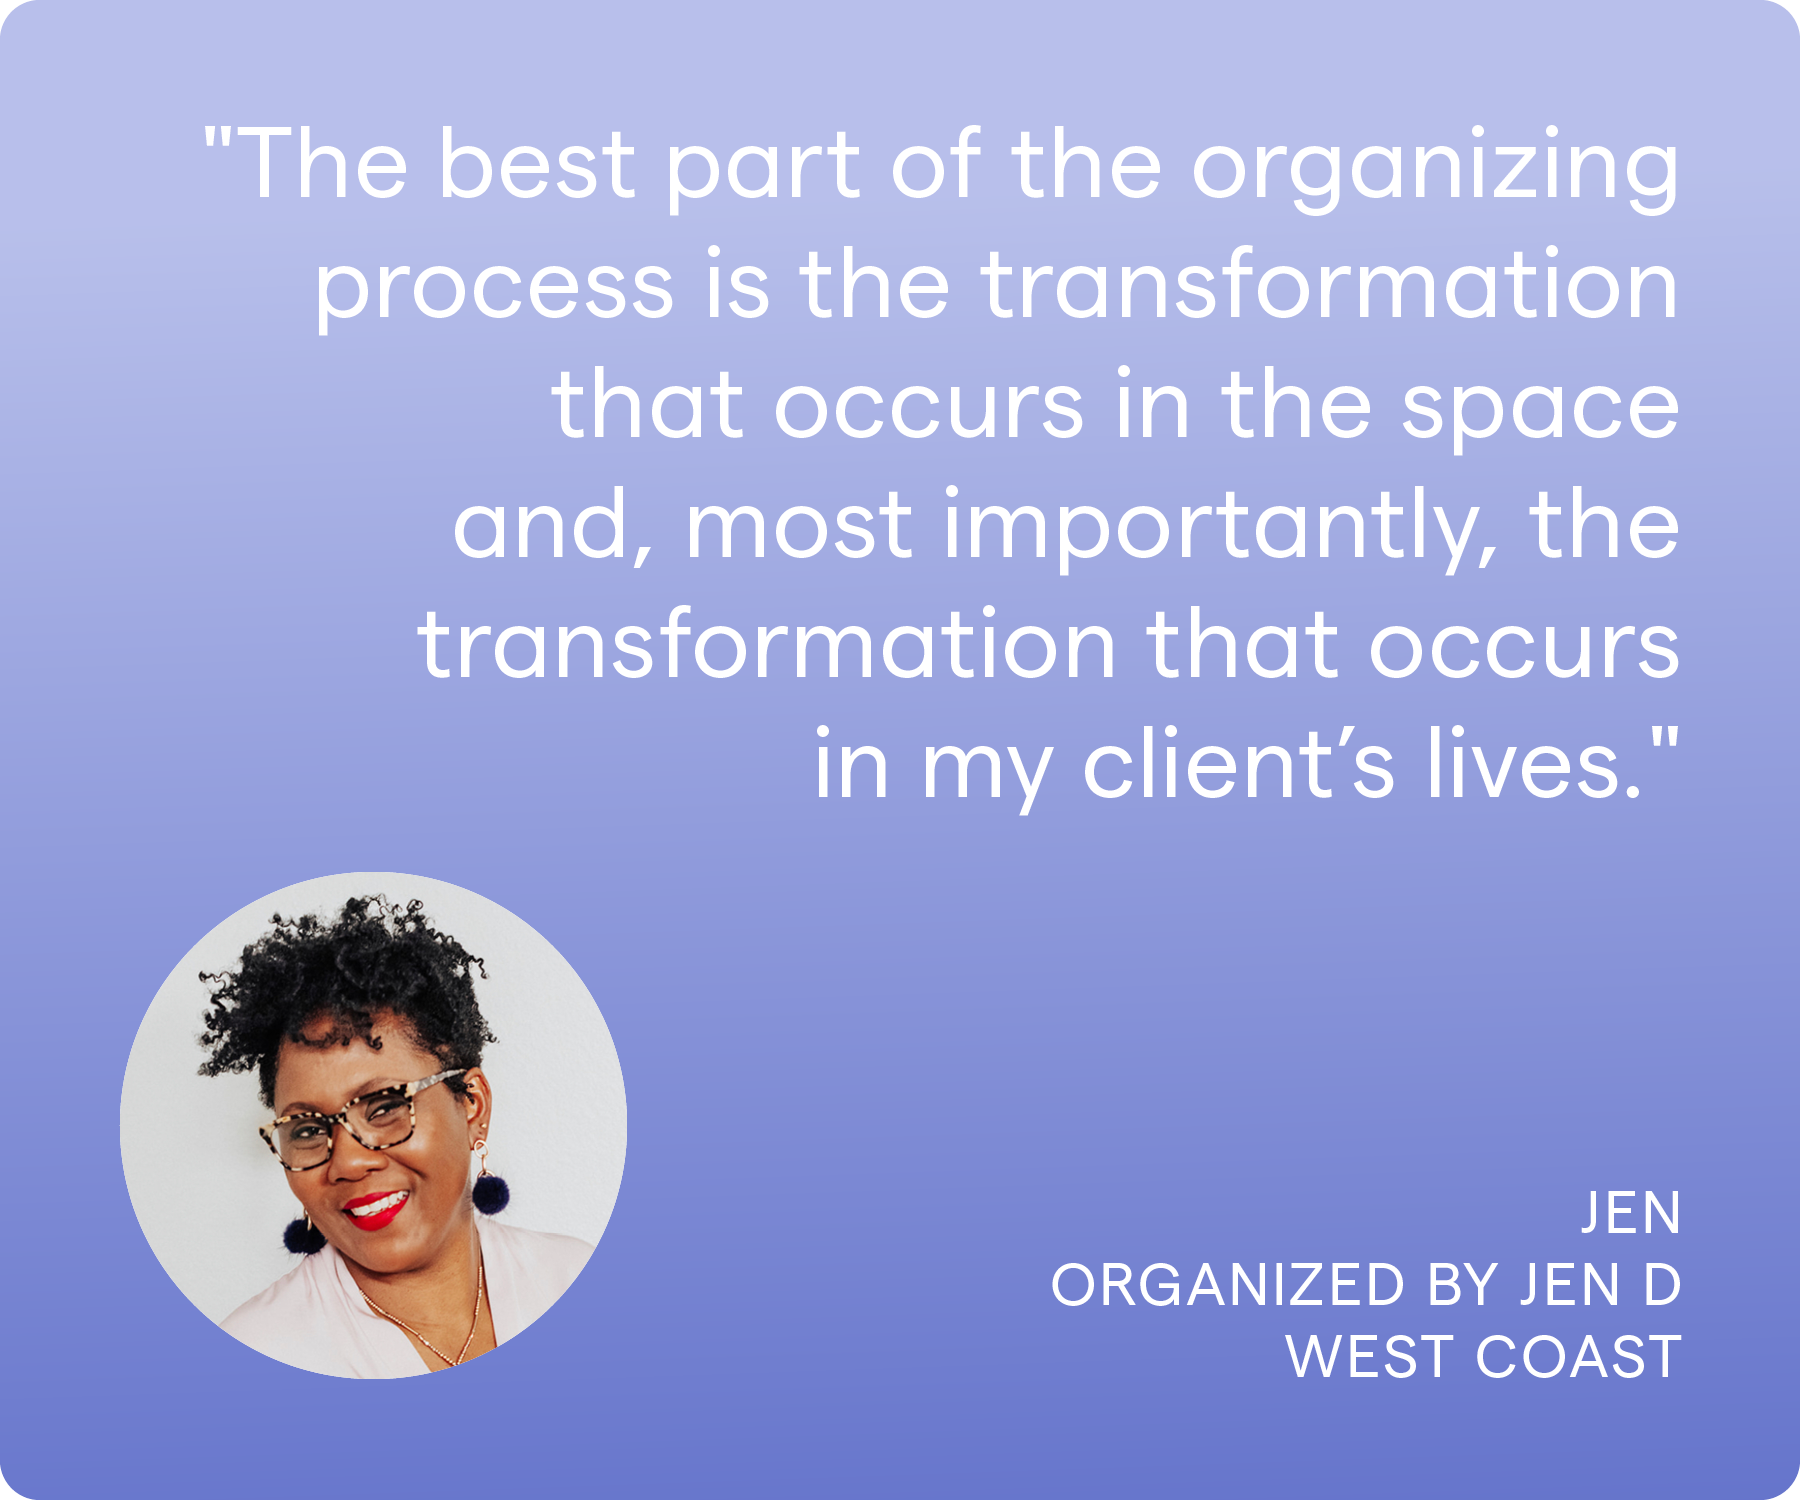 'The best part of the organizing process is the transformation that occurs in the space and, most importantly, the transformation that occurs in my client's lives.' Jen, Organized by Jen D, West Coast